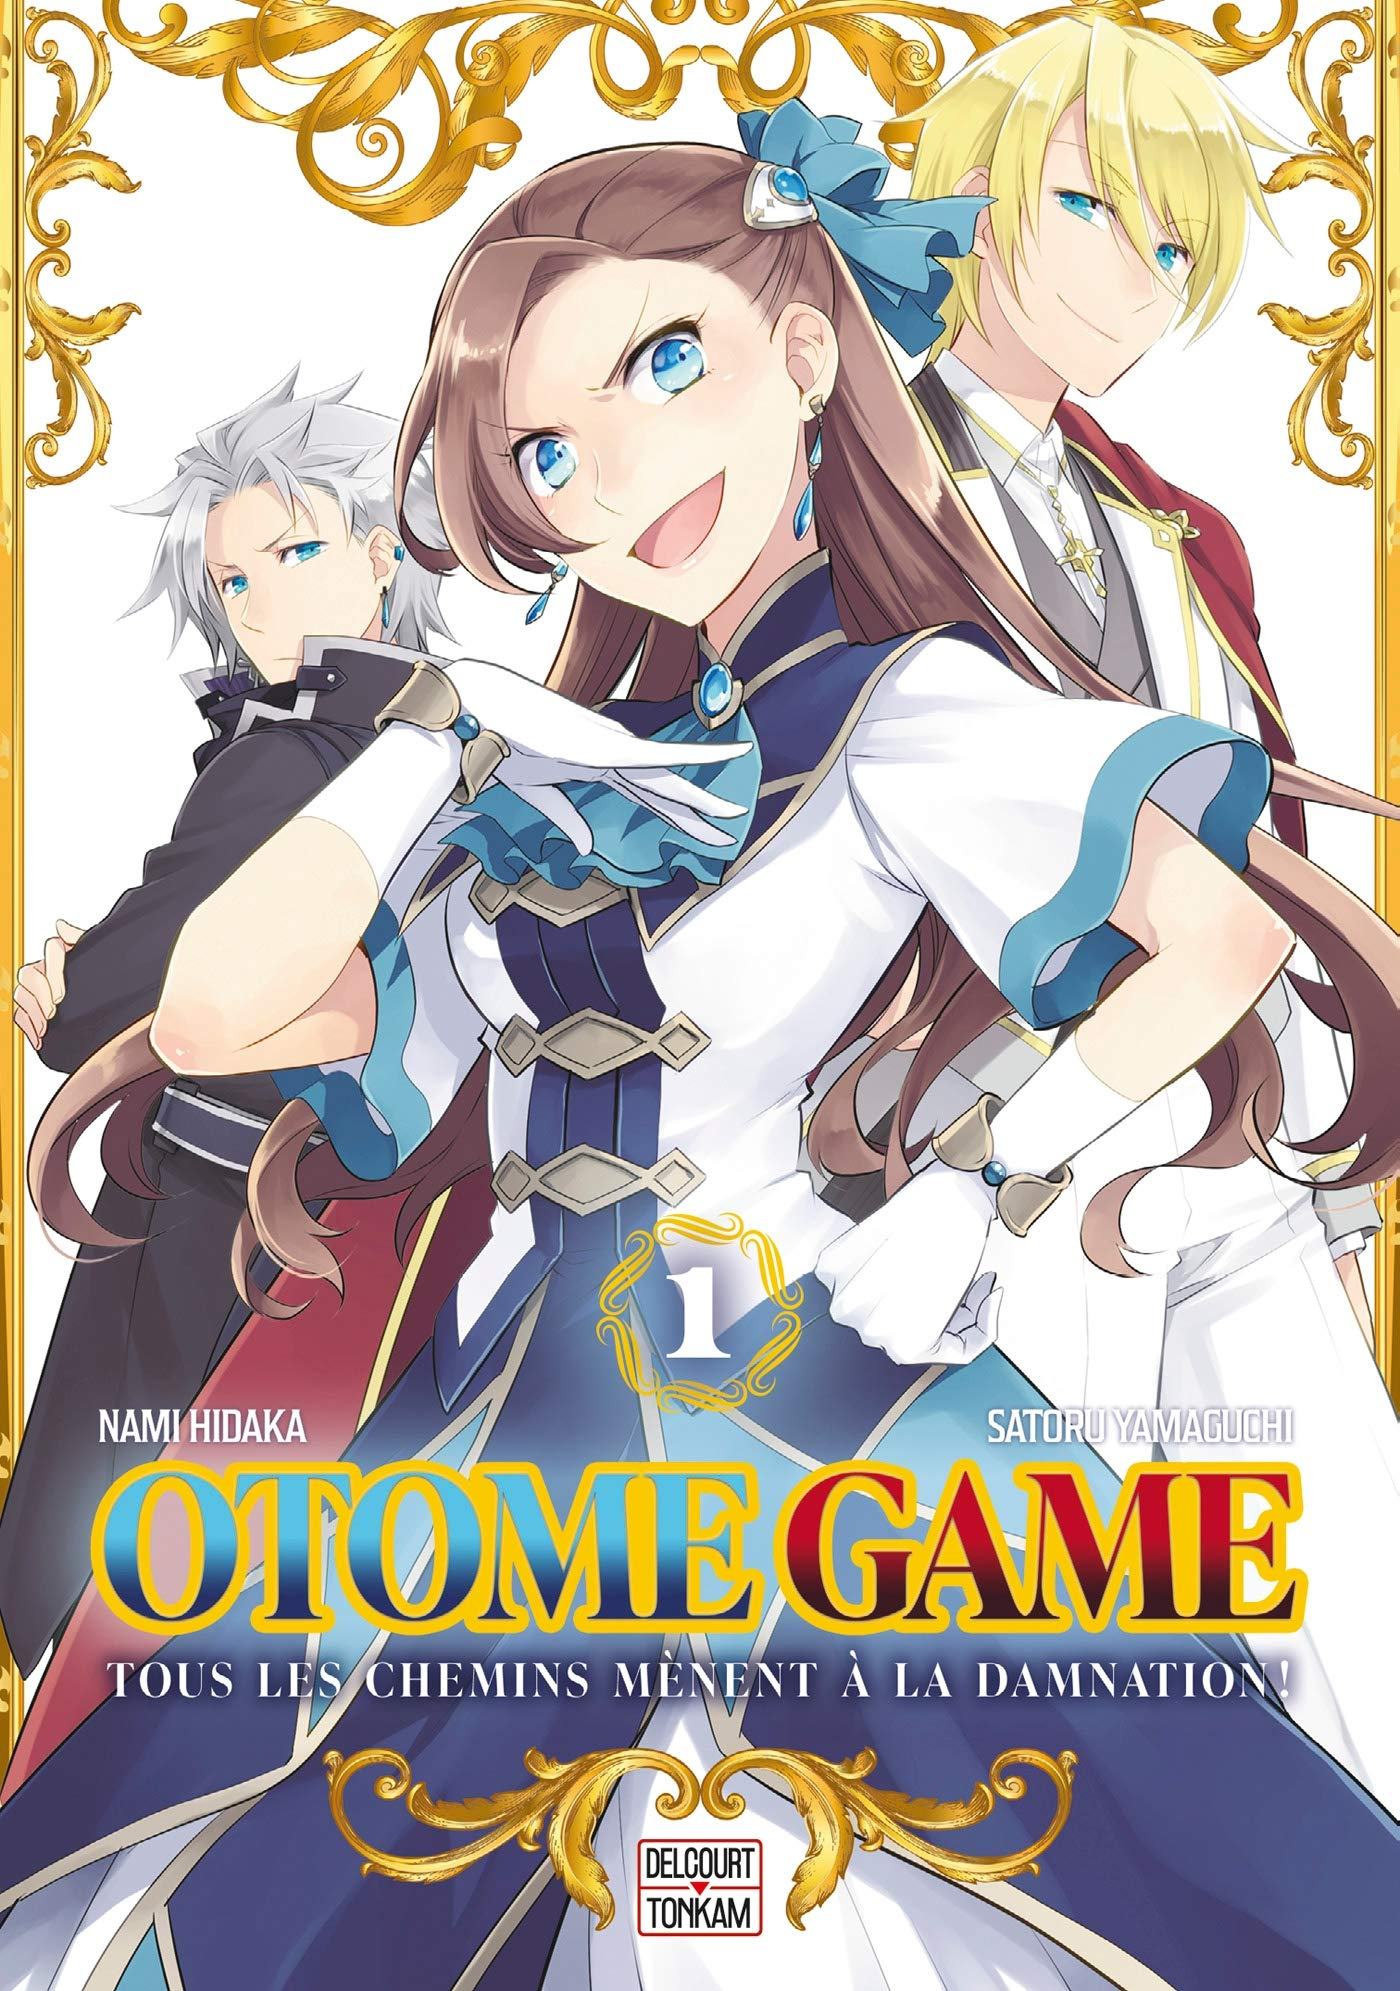 Otome Game 1